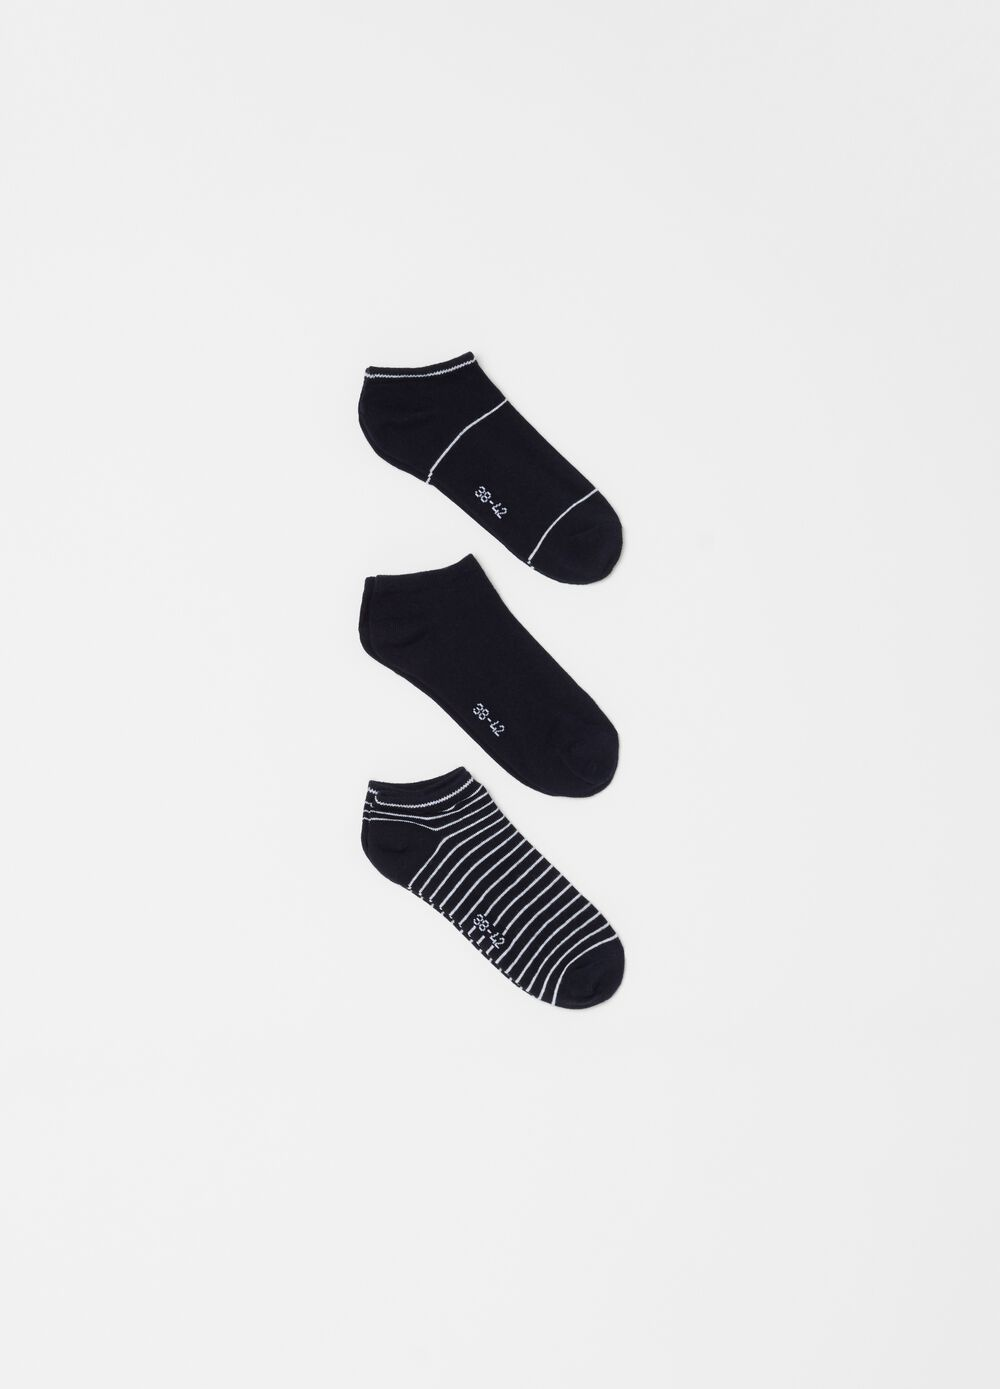 Three-pack stretch shoe liners with pattern